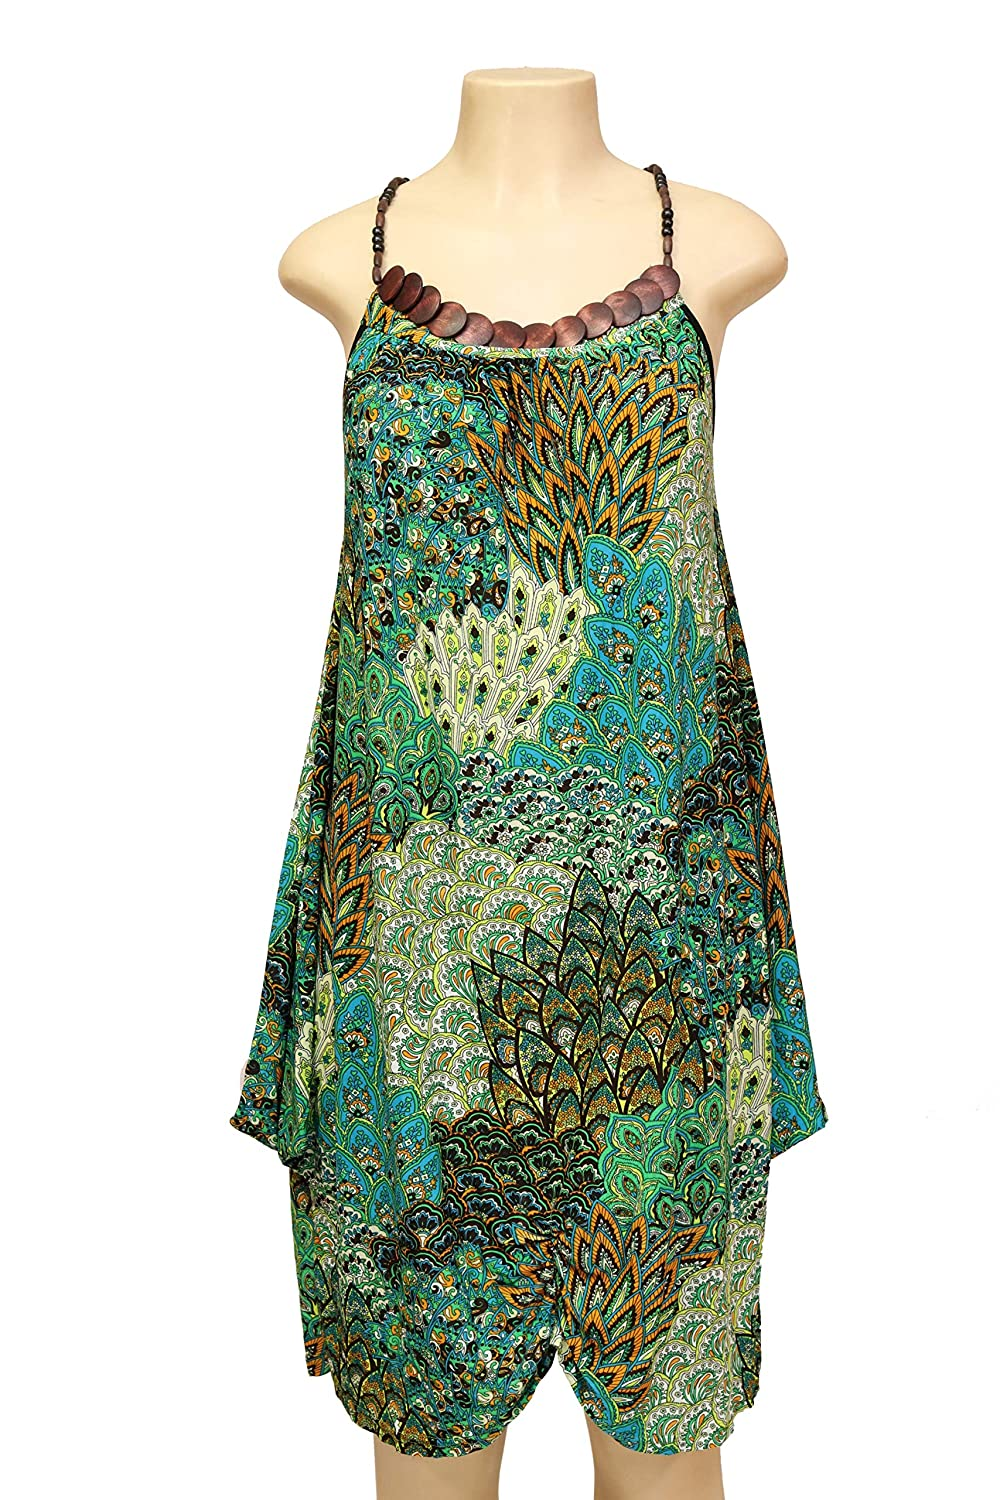 Nisa Women Peacock Design Spaghetti Strip Tank Top Embellish with Wooden Beads Around The Neck and Halter Strips ID D8030(SM)